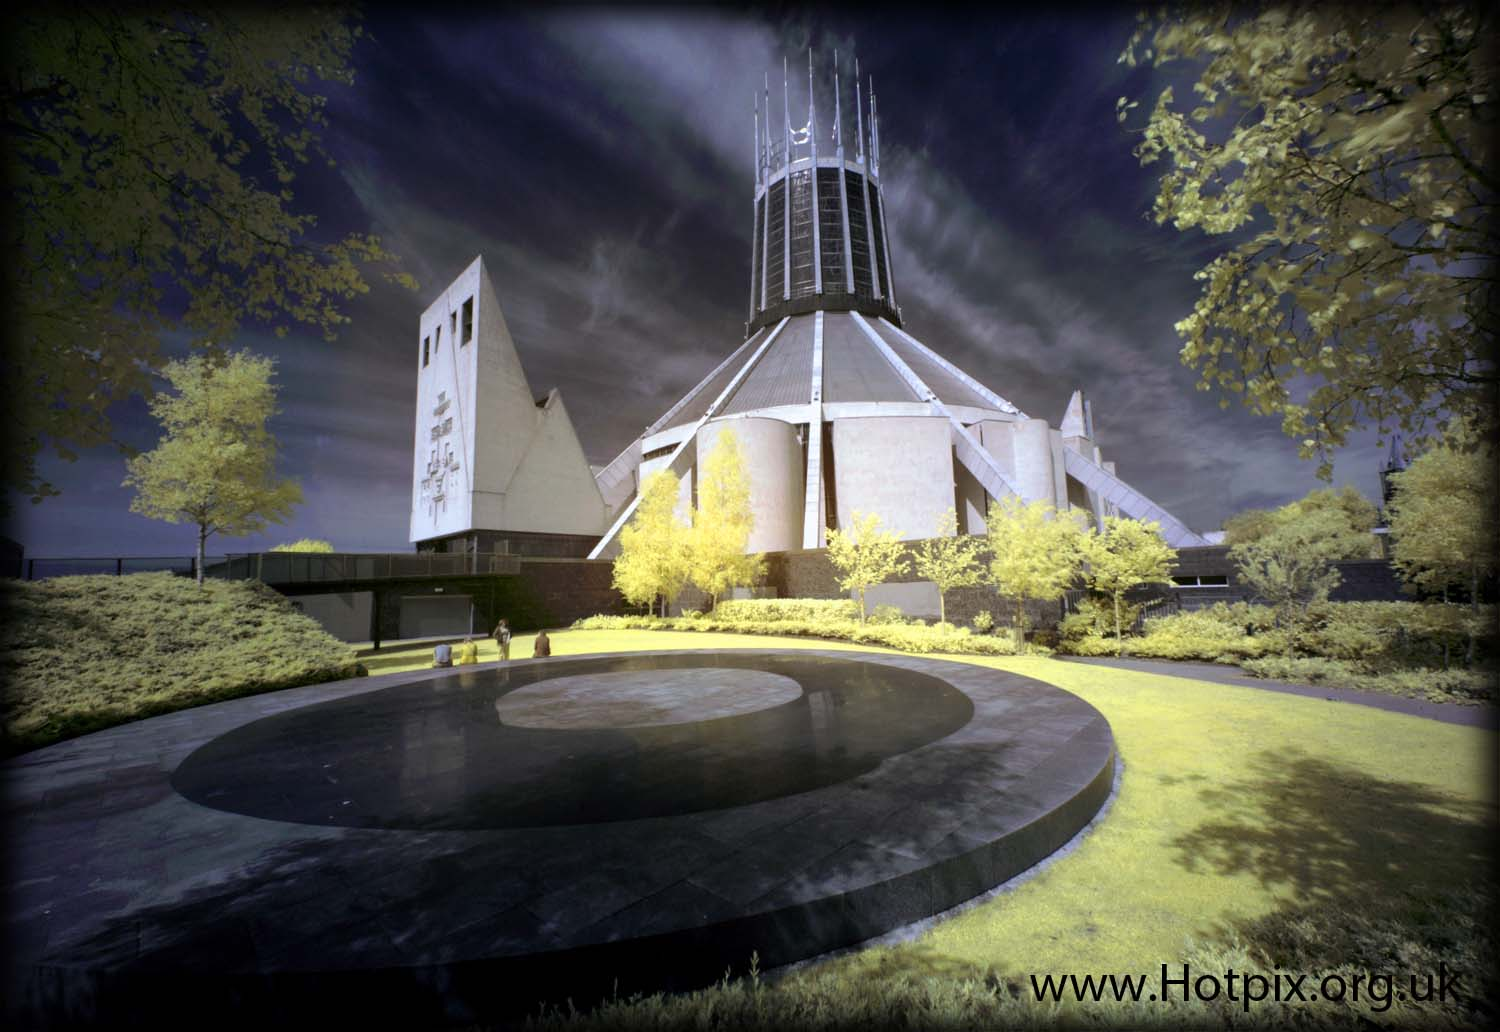 Catholic,Cathedral,Liverpool,Concrete,Tony,Wigwam,wig,wam,Smith,Hotpix,tonysmith,paddy,paddys,hope,street,England,Beatles,travel,what,see,UK,infra,red,infrared,ir,R72,Hoya,color,colour,false,adapted,720nm,camera,cameras,Mersey,Funnel,historic,city,buildings,building,town,beatle,thebeatles,hotpix.com